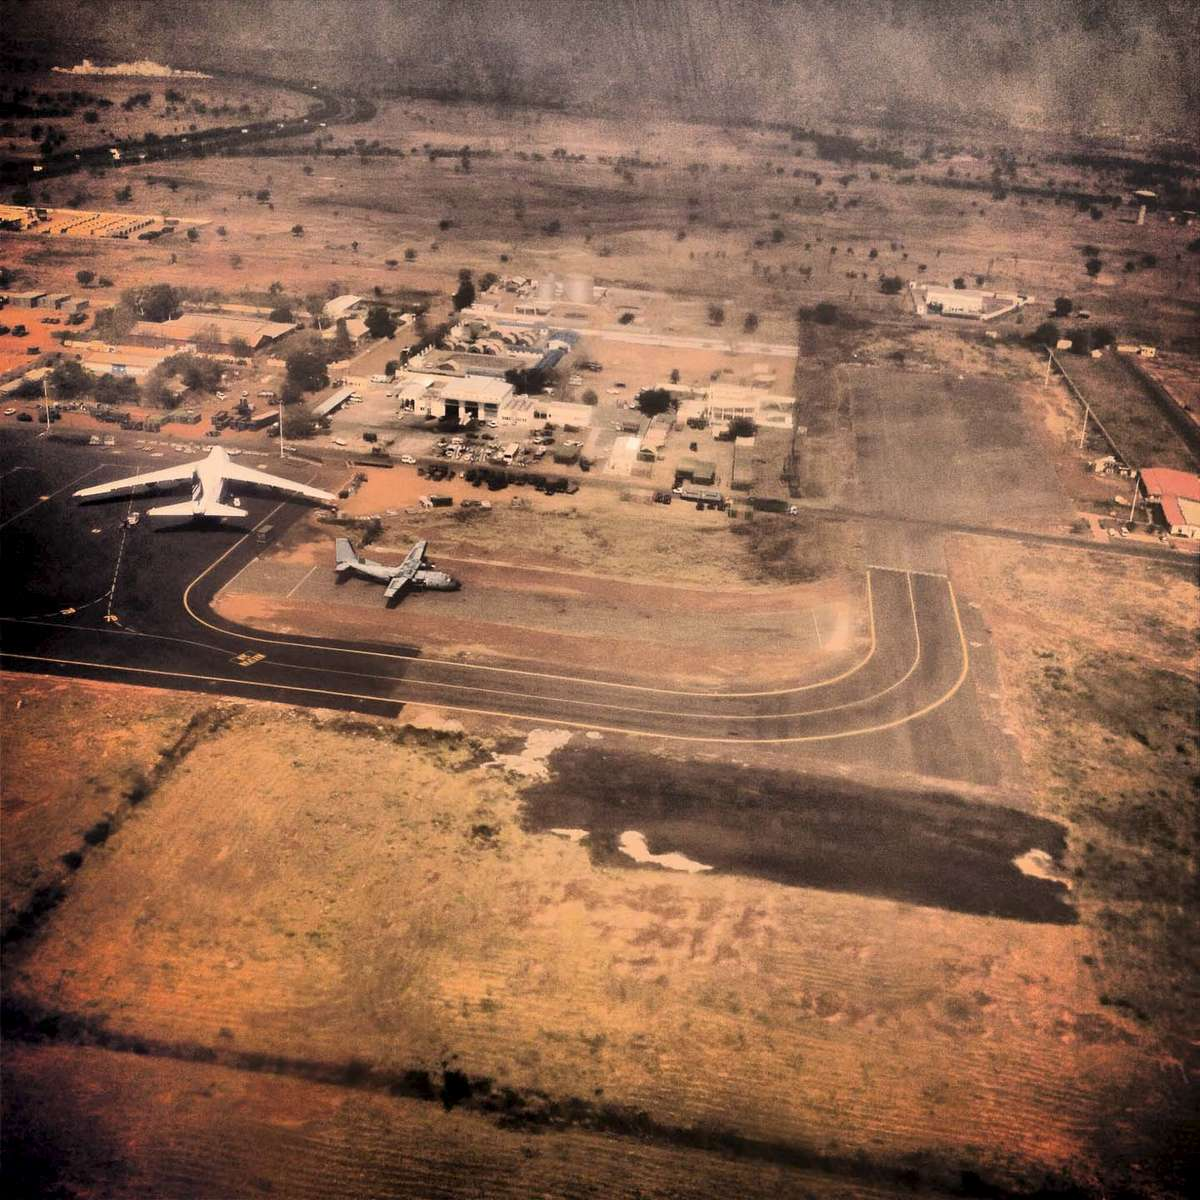 The airport in Bamako, Mali. January 2013.